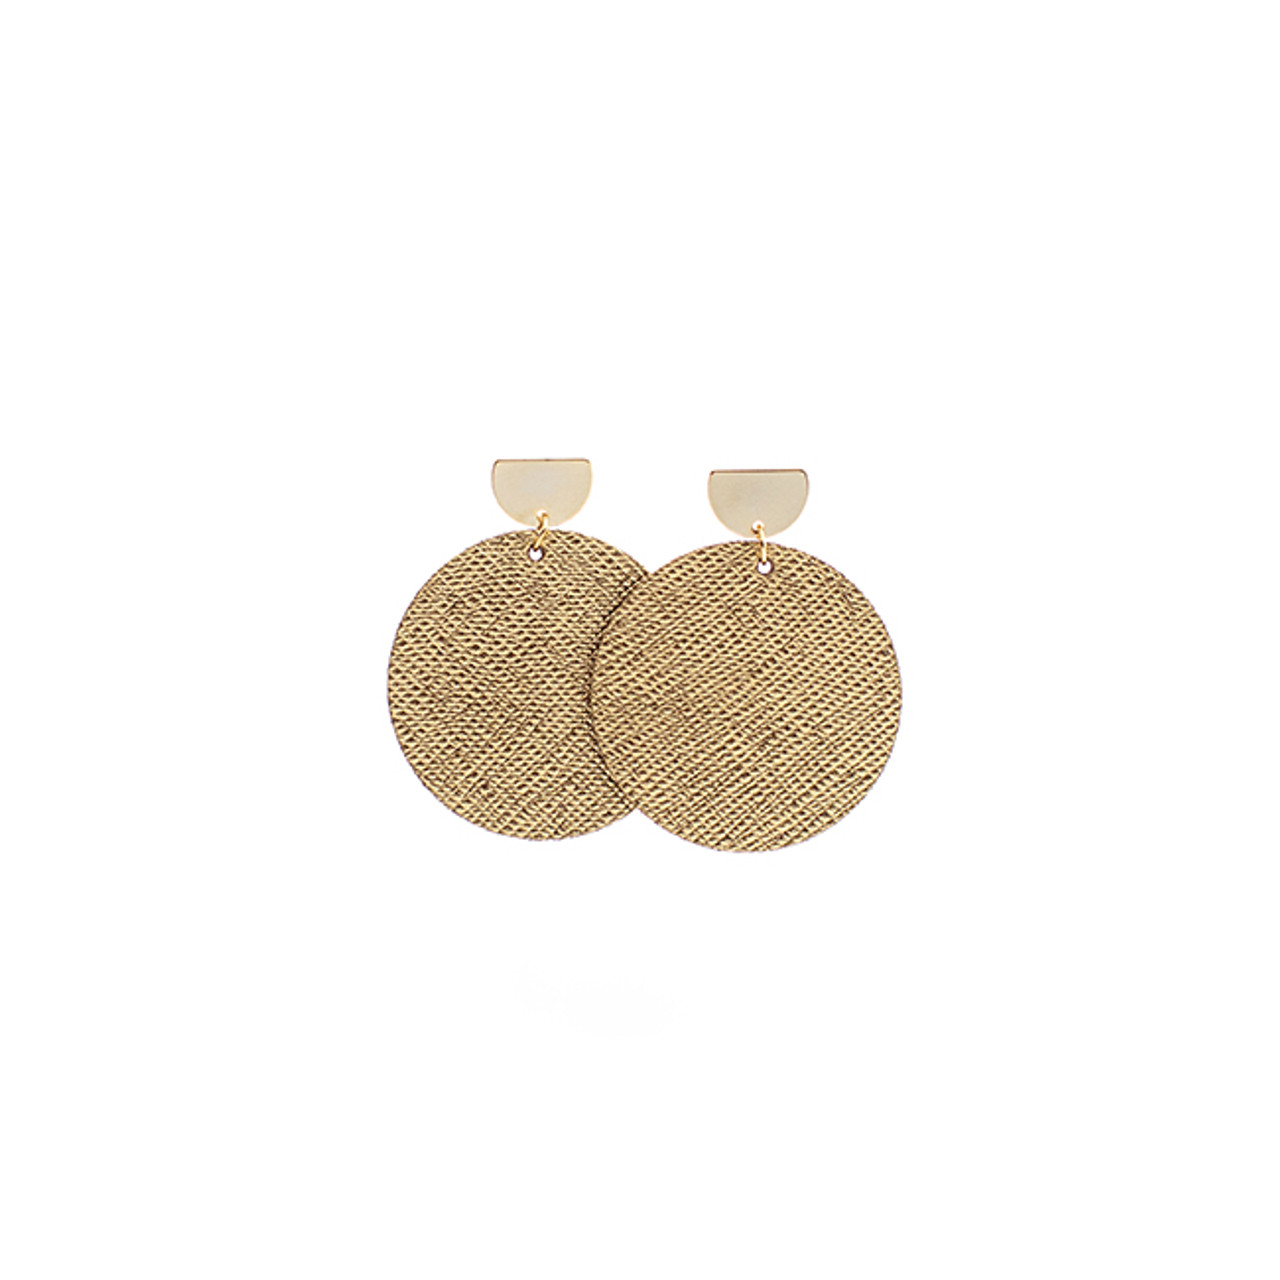 Gold Leaf Disc Statement Leather Earrings with Gold Post